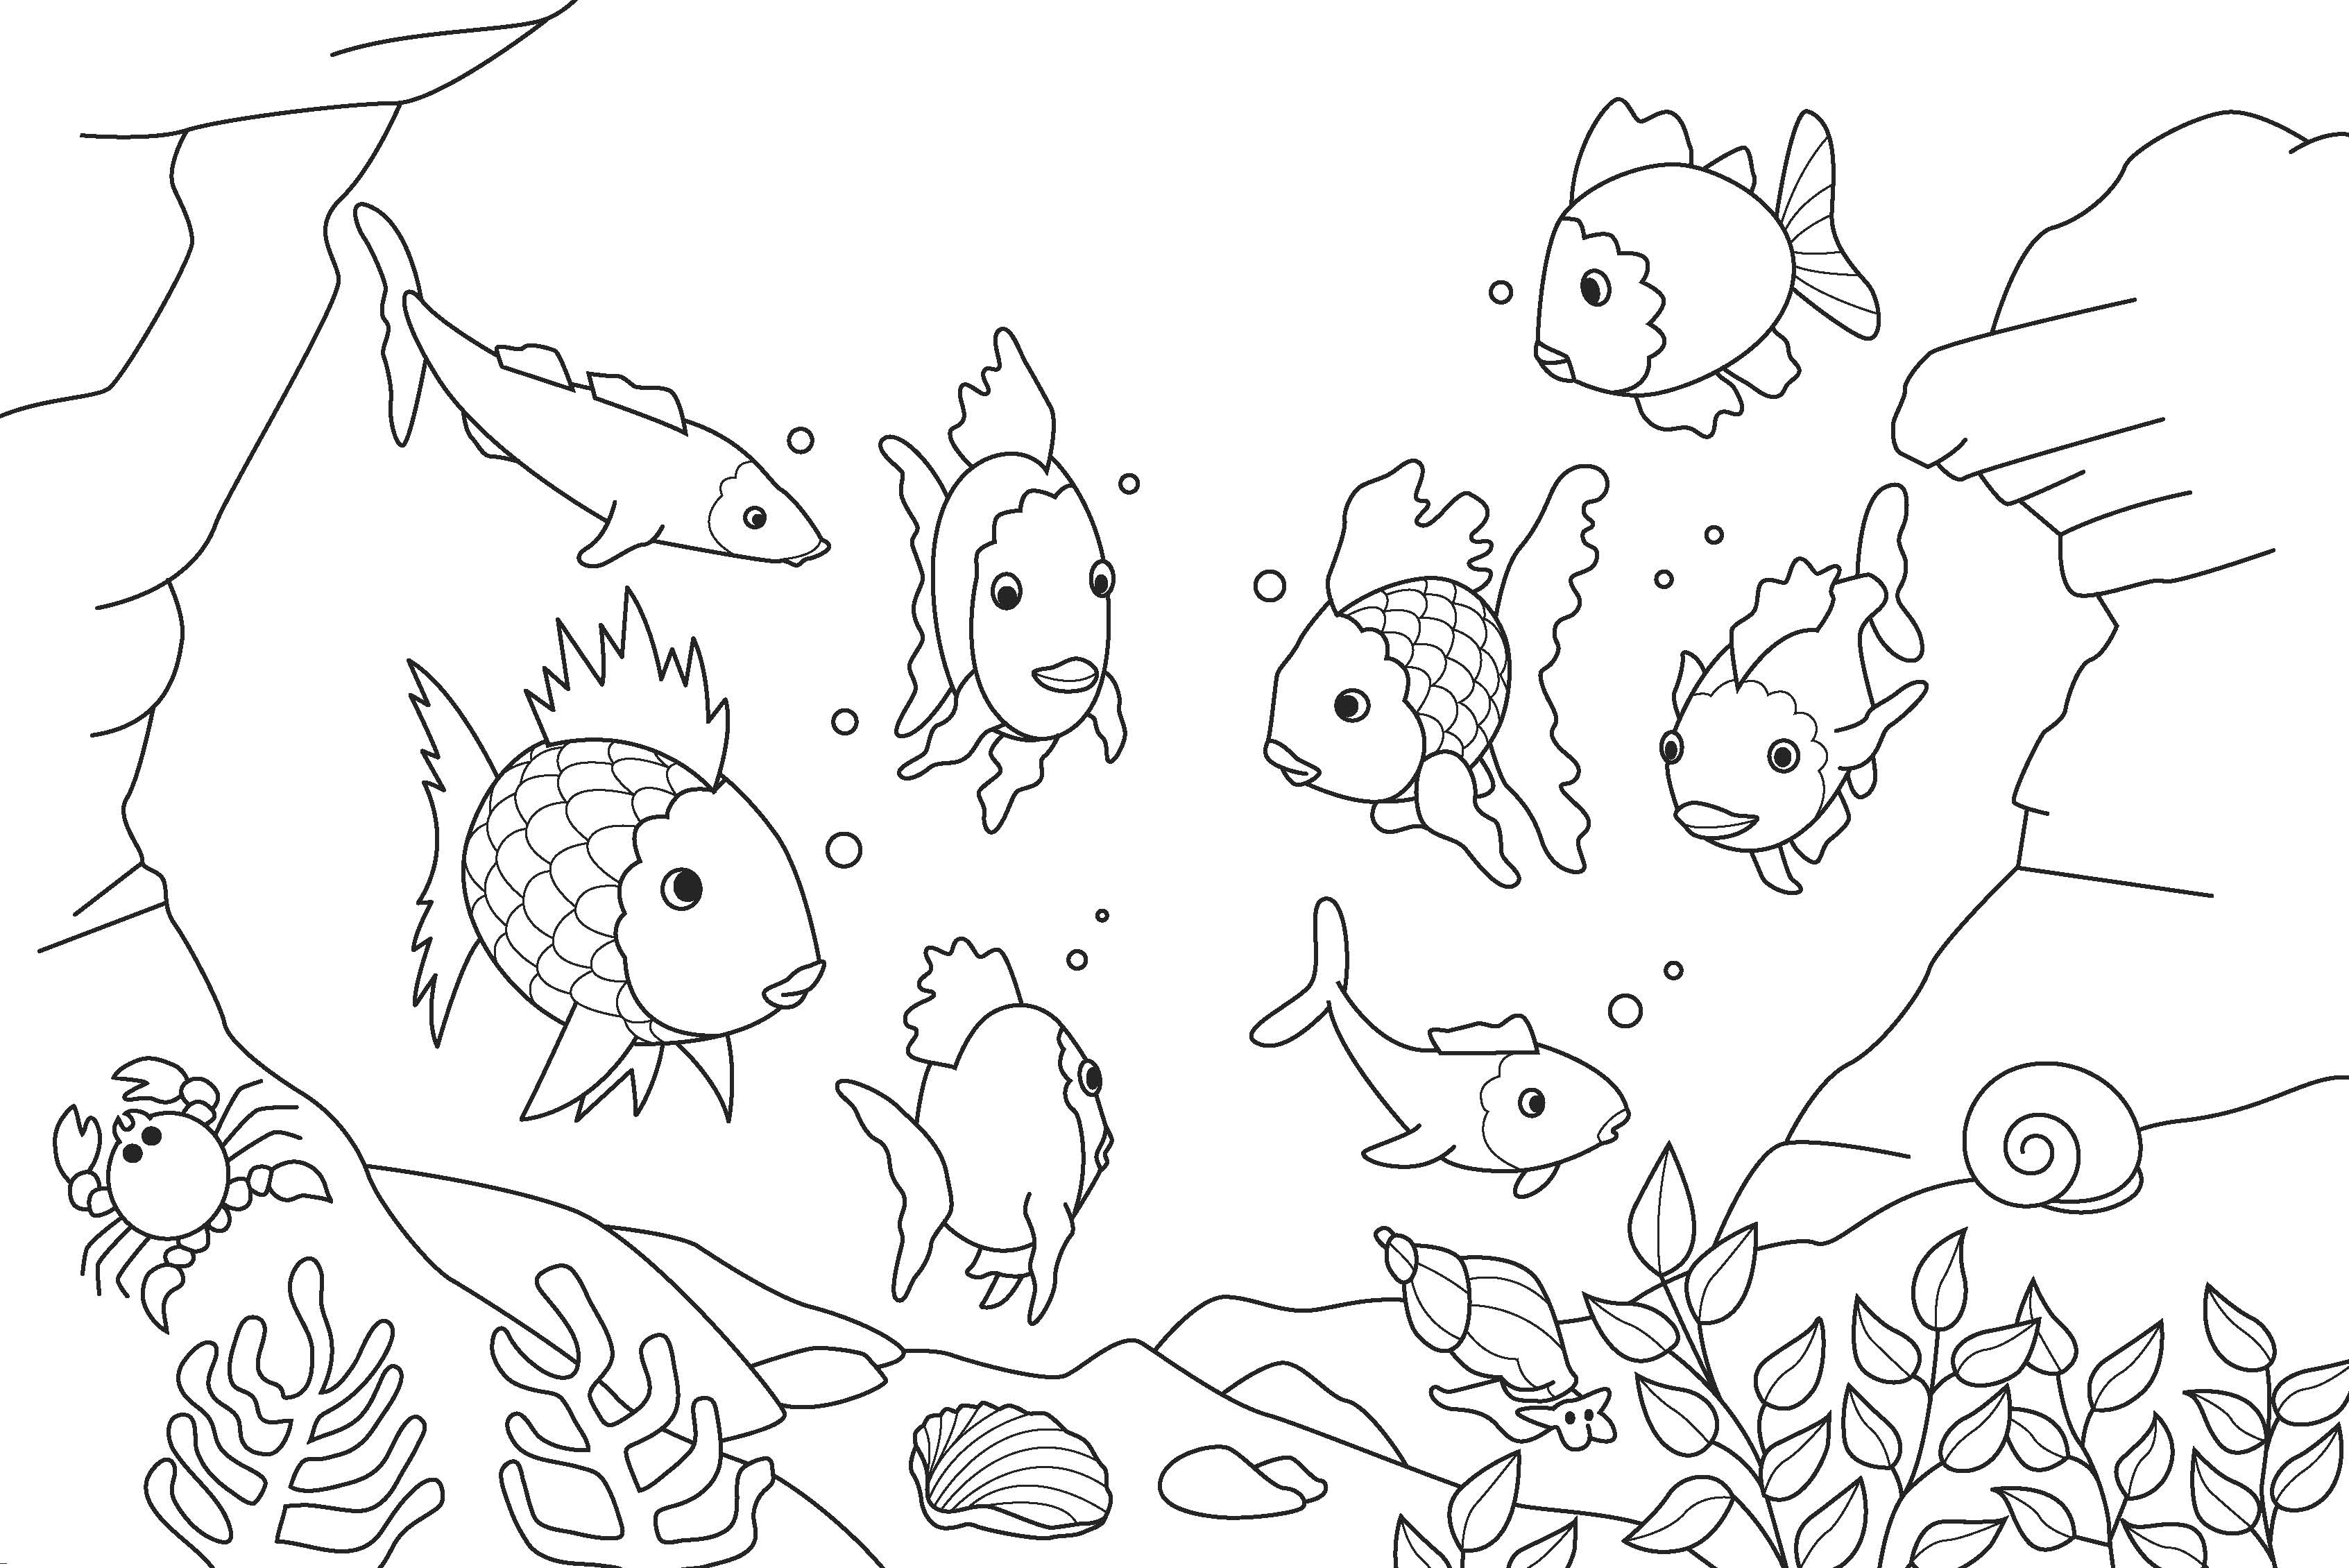 cartoon underwater coloring pages underwater coloring pages to download and print for free pages cartoon underwater coloring